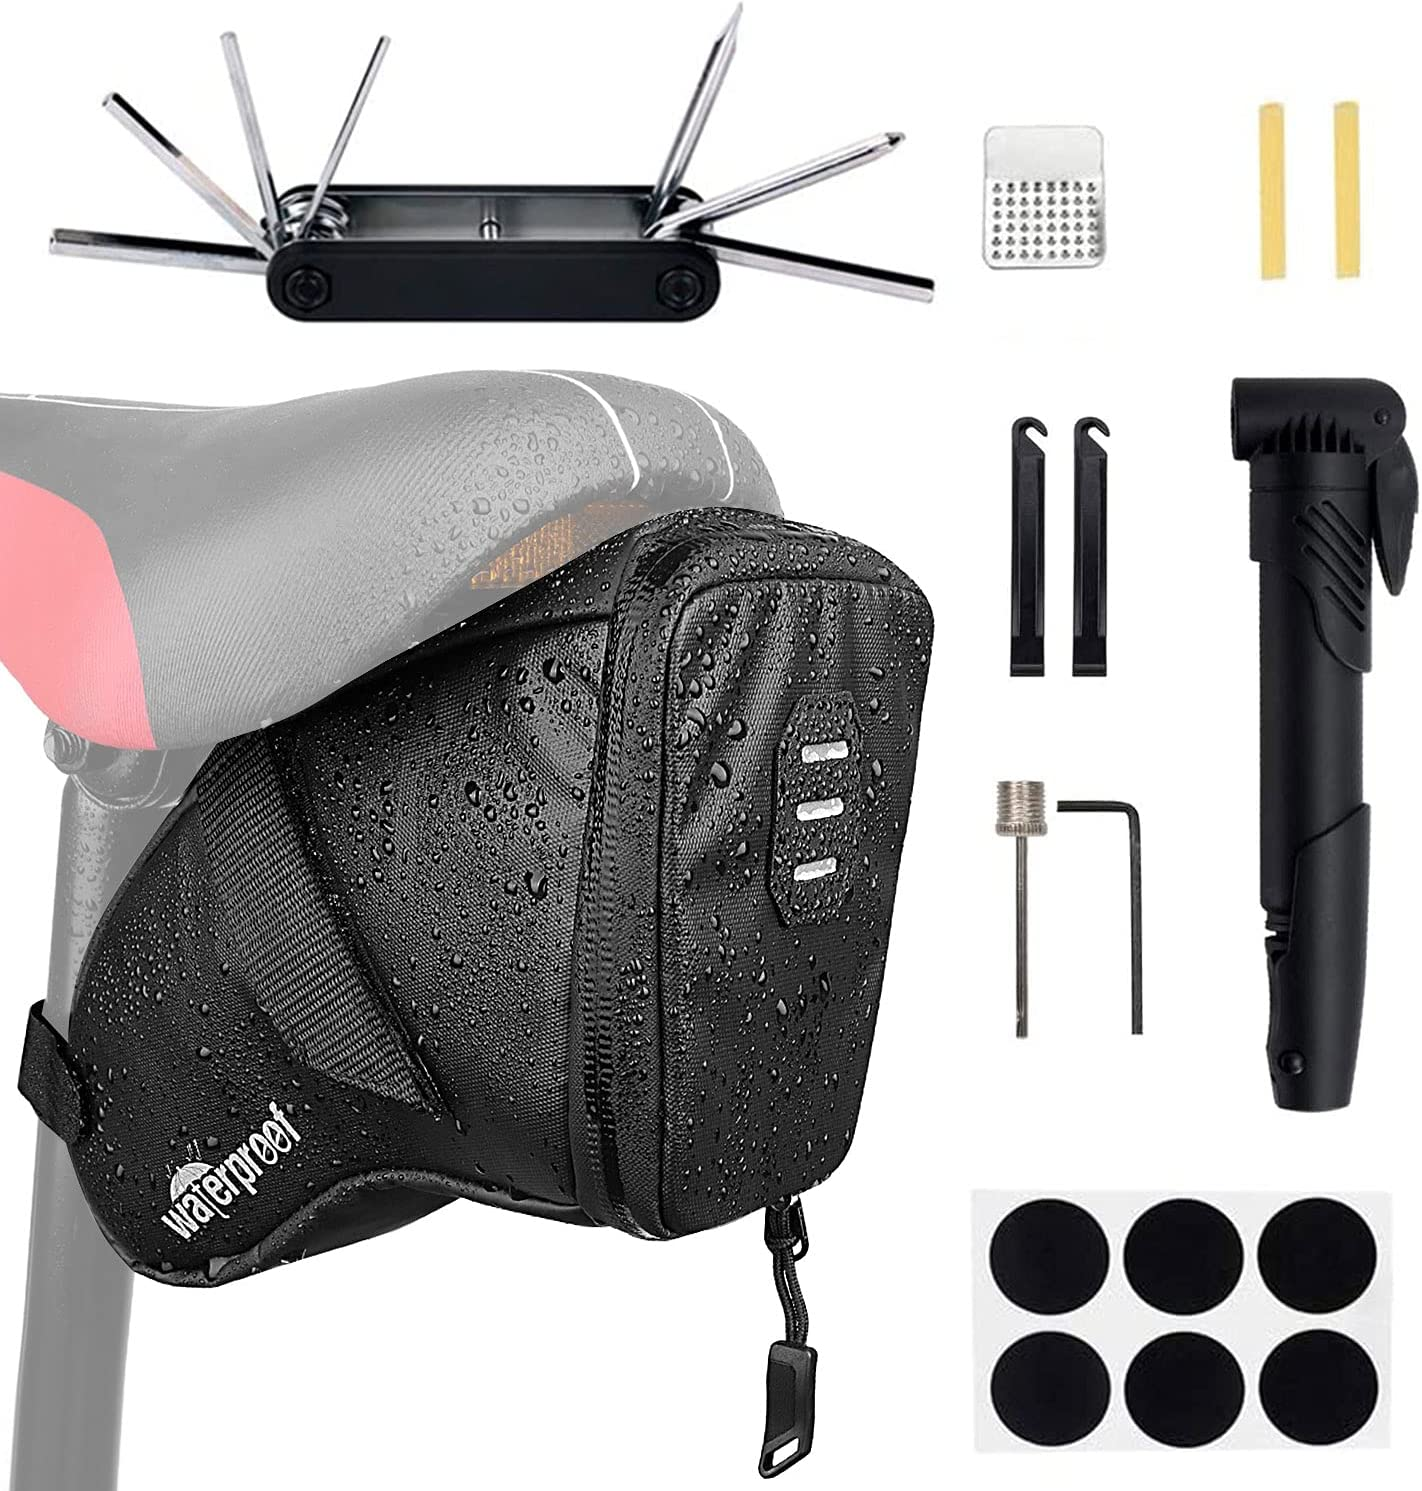 WOTOW Bike Tyre Directly Challenge the lowest price managed store Repair Kits Bag 120 Waterproof Saddle Bicycle